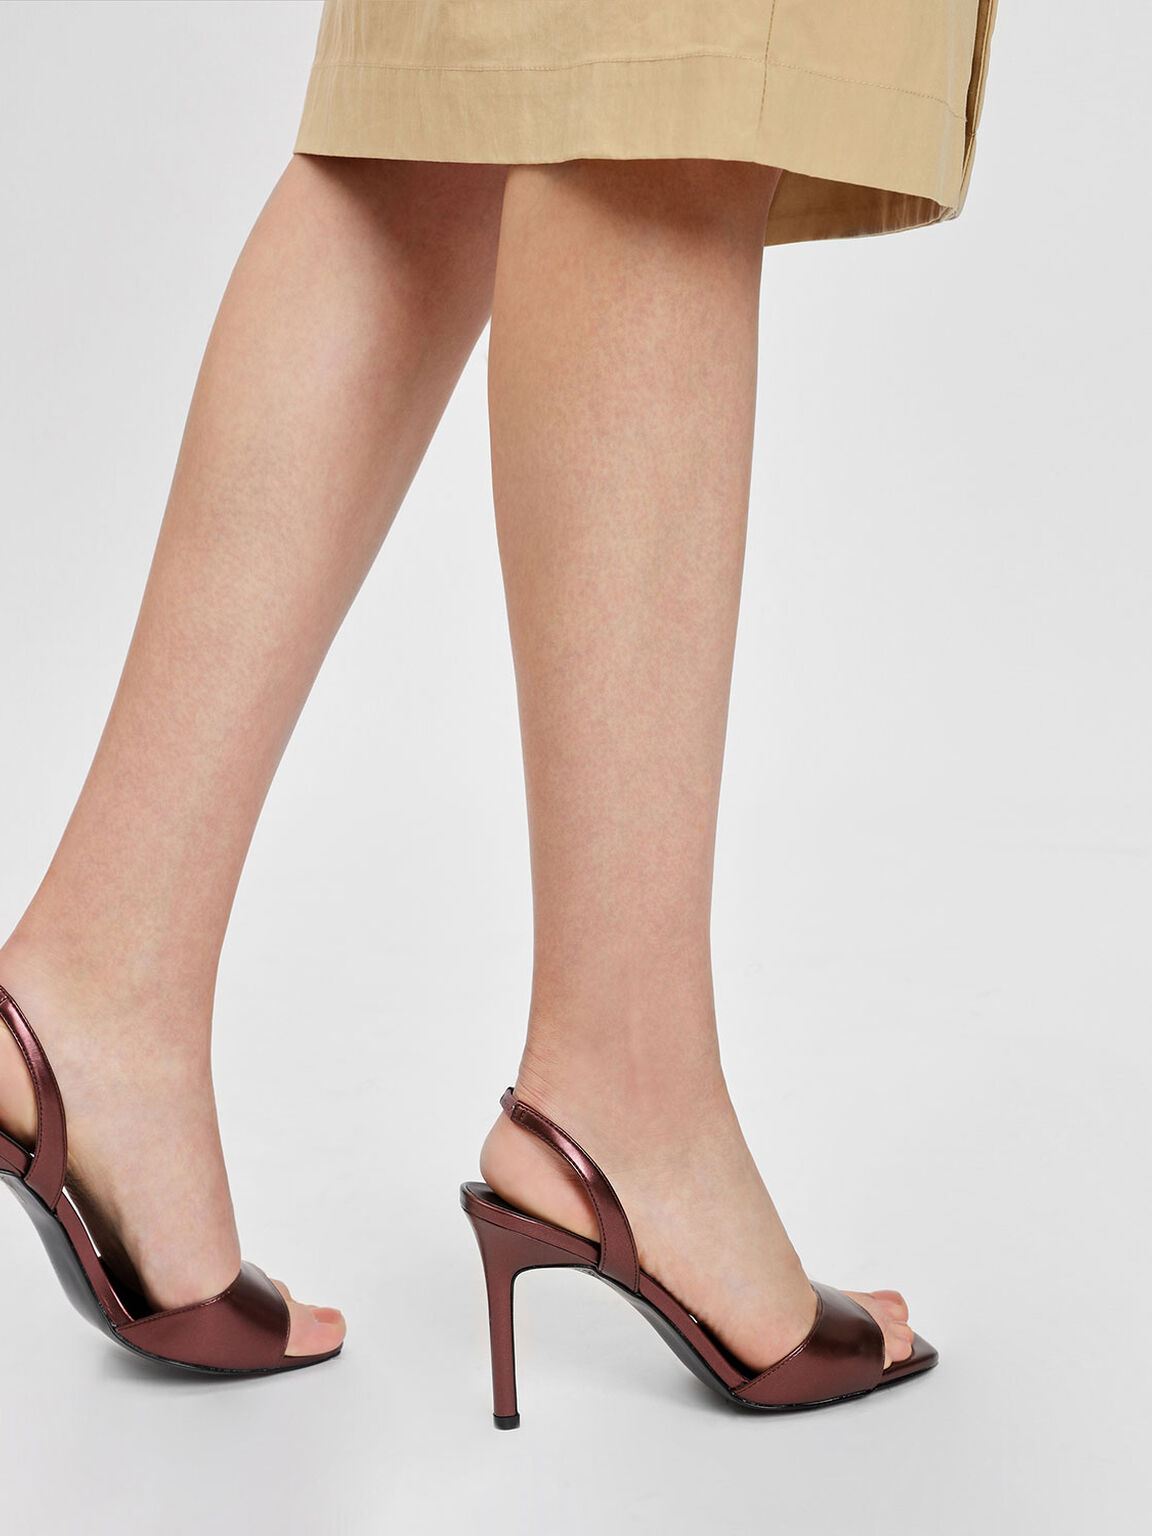 Square Toe Slingback Heels, Dark Brown, hi-res